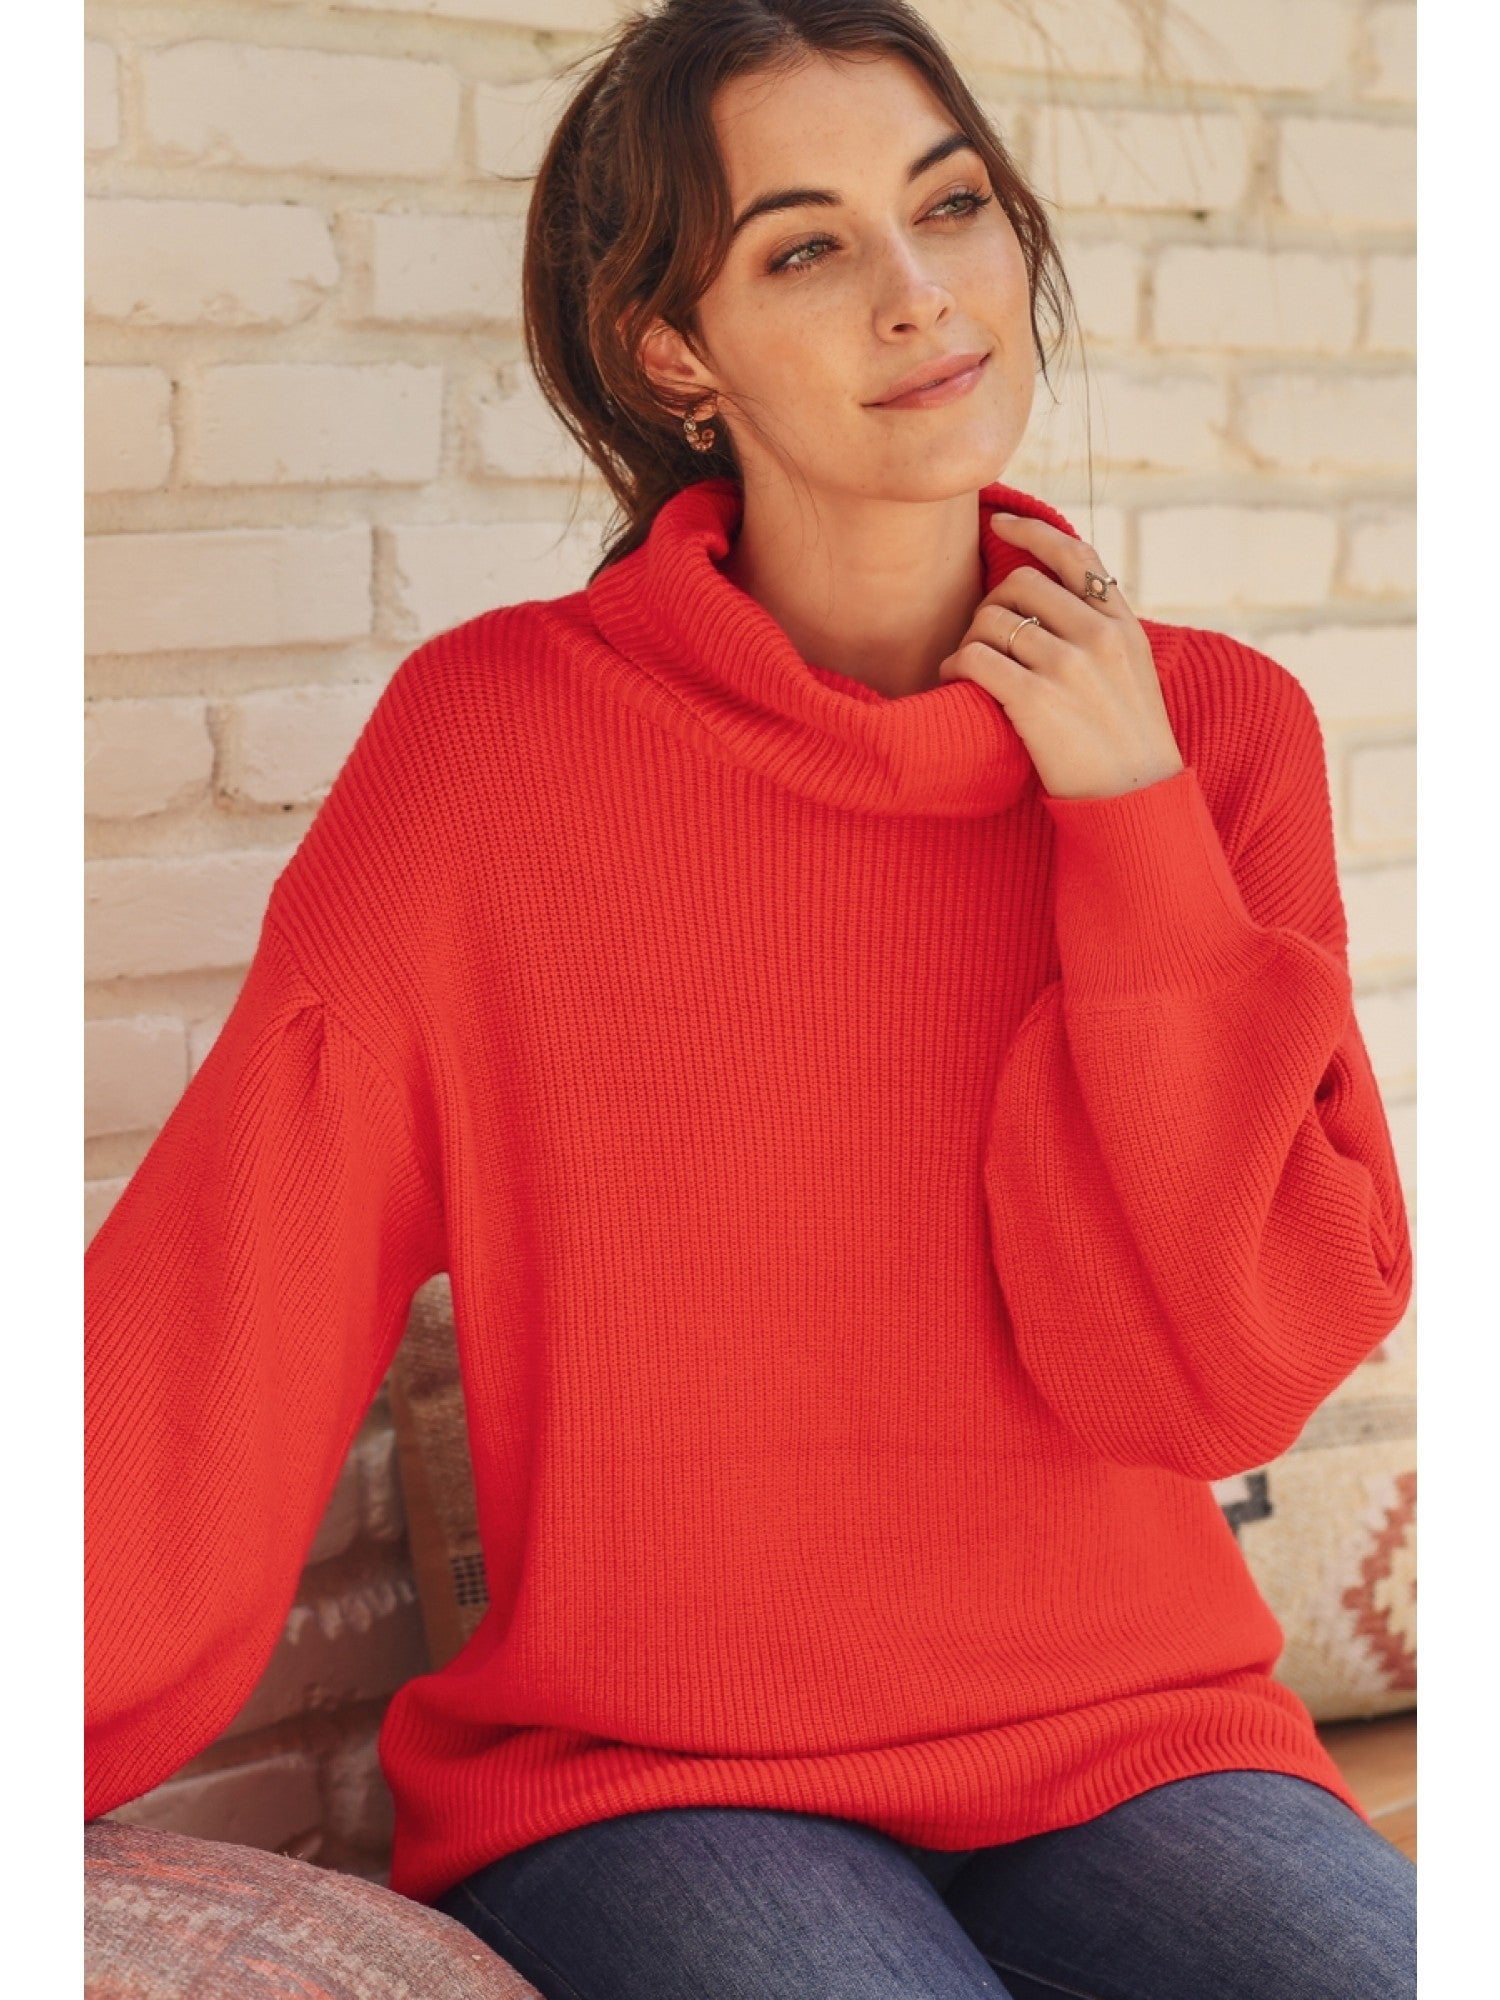 Open To Ideas Sweater, Varied Colors